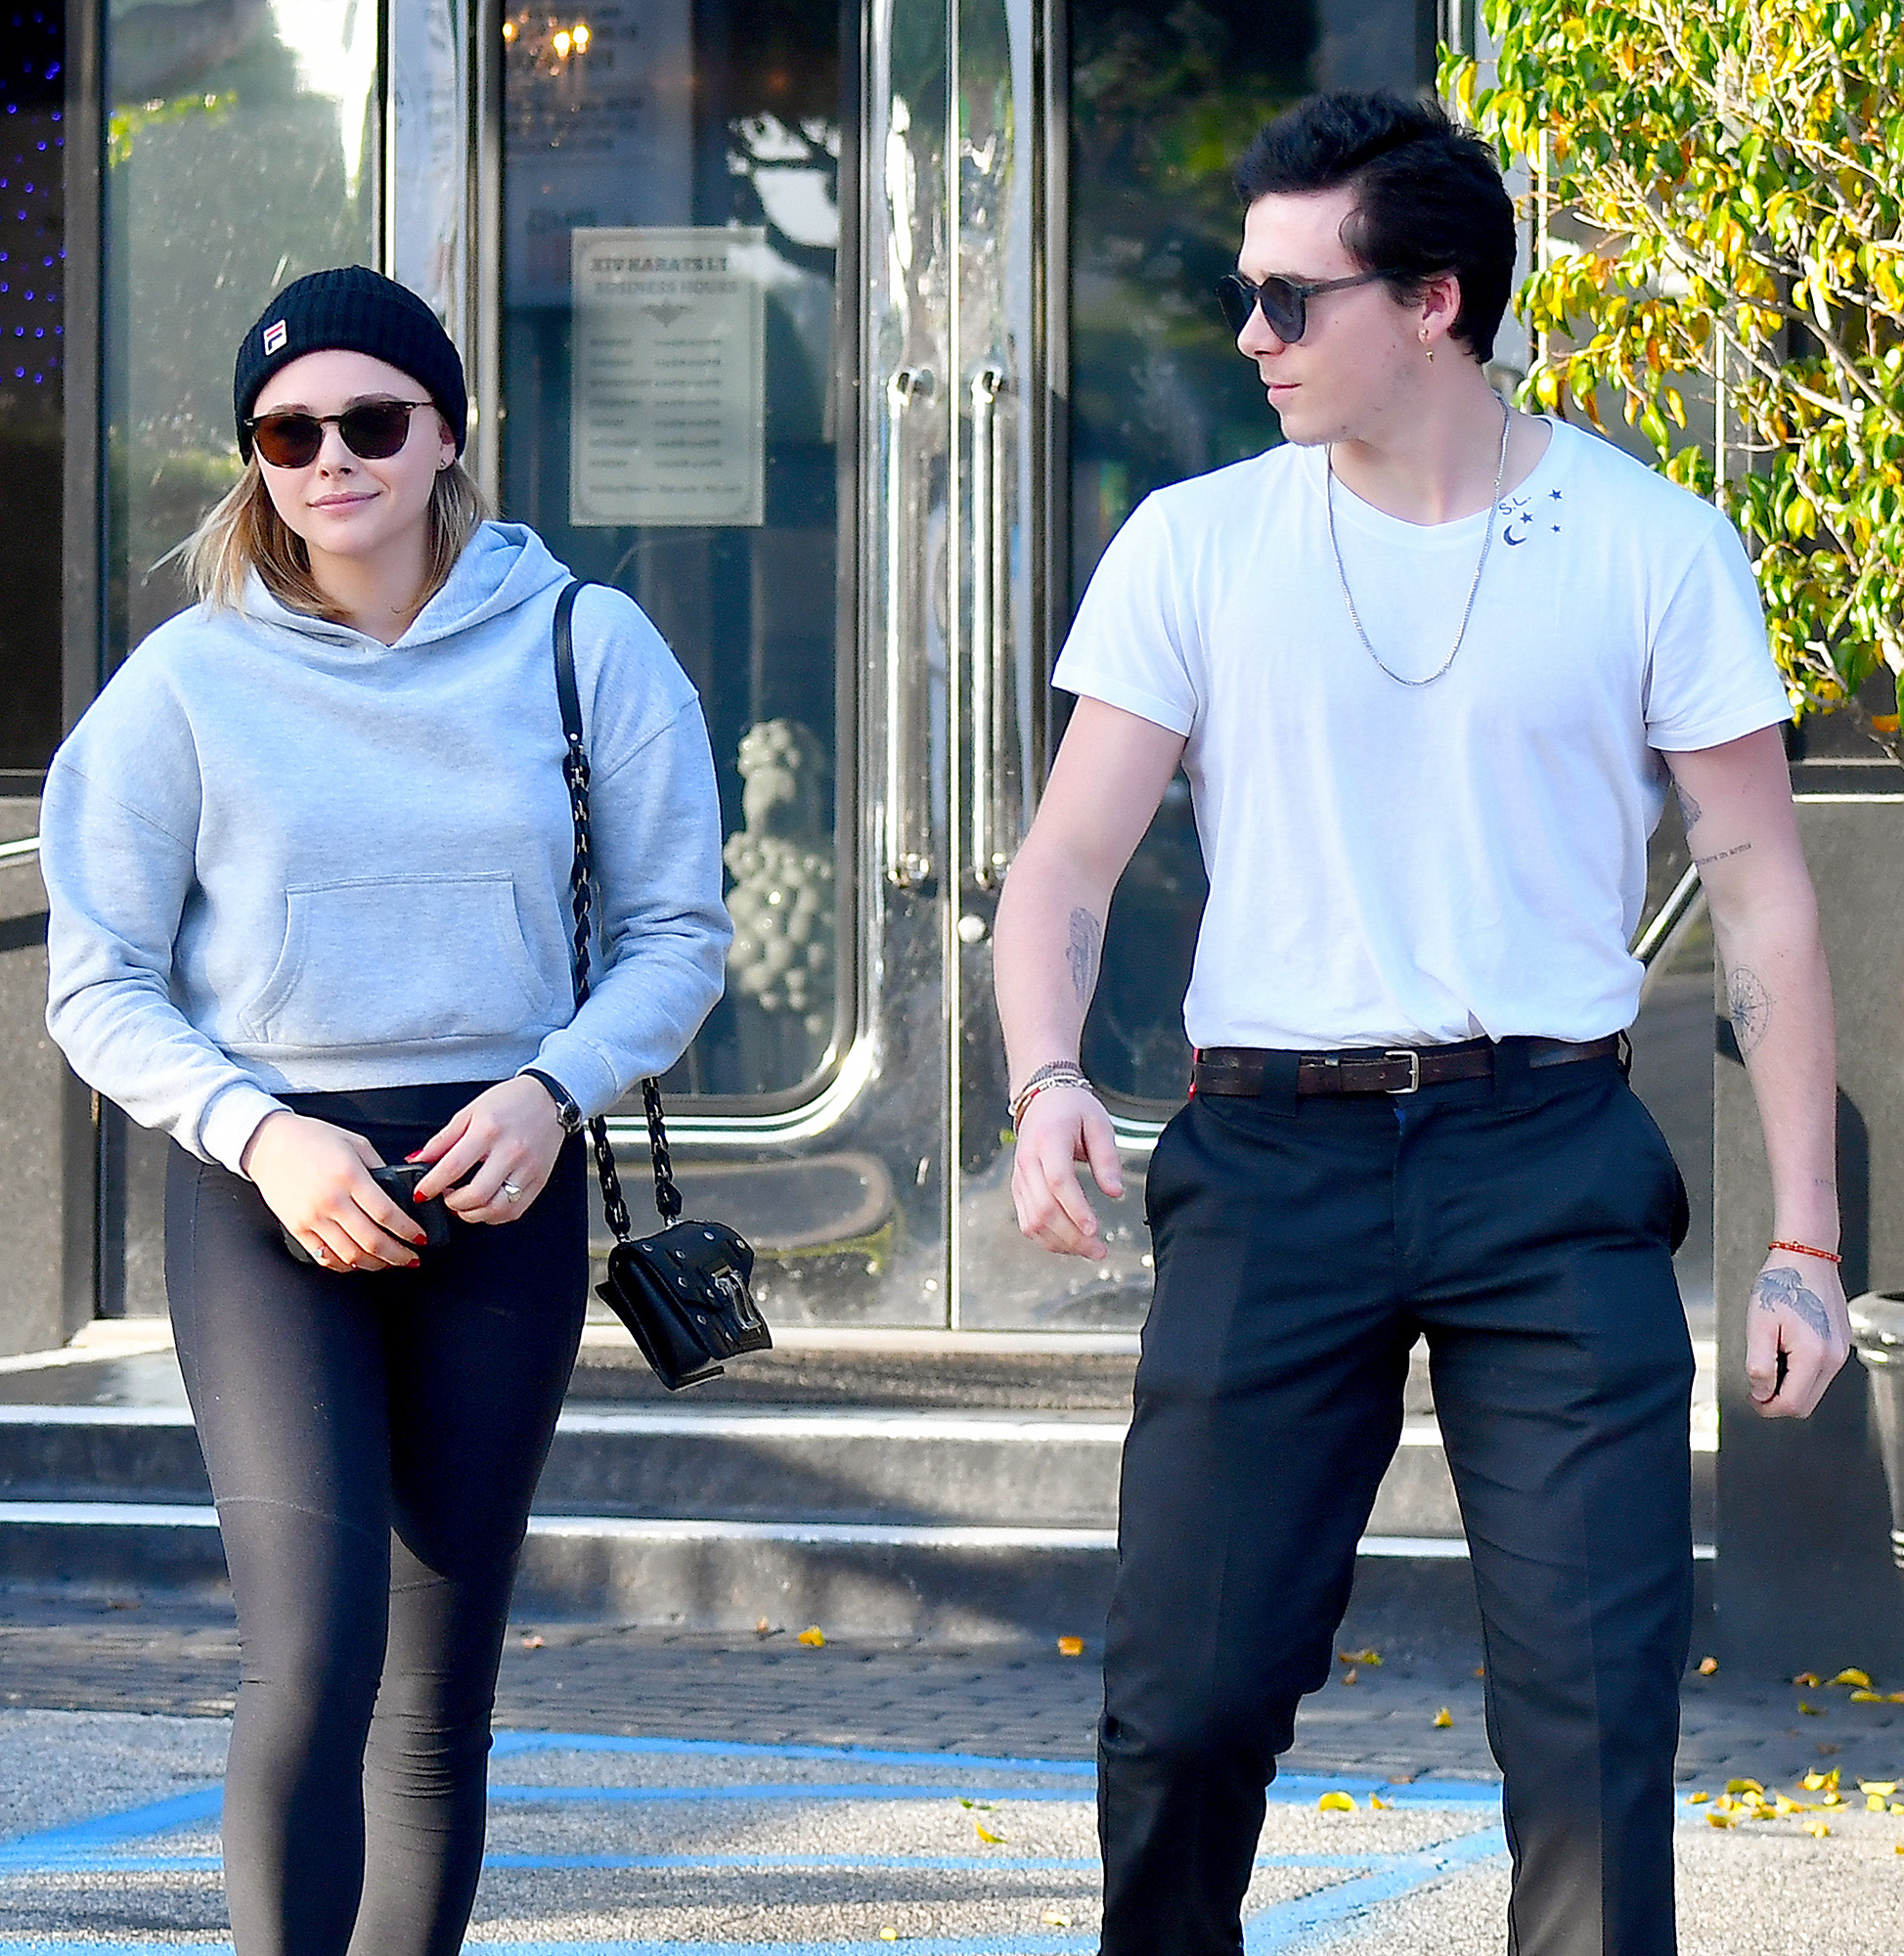 Brooklyn Beckham and his girlfriend Chloe Moretz are seen leaving a Jewelry store in Beverly Hills